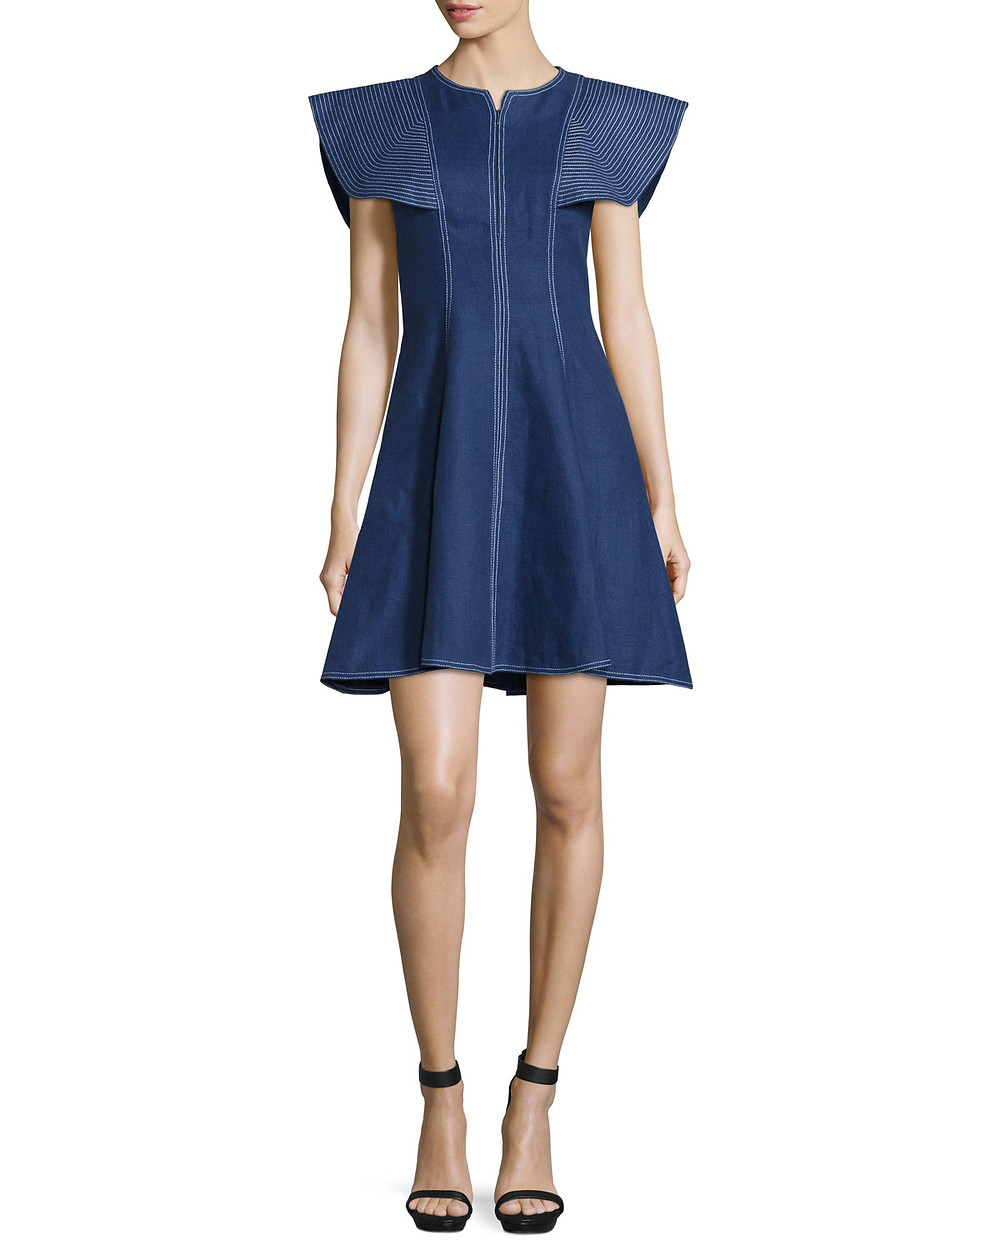 Andrew Gn fit and flare denim dress $1,950